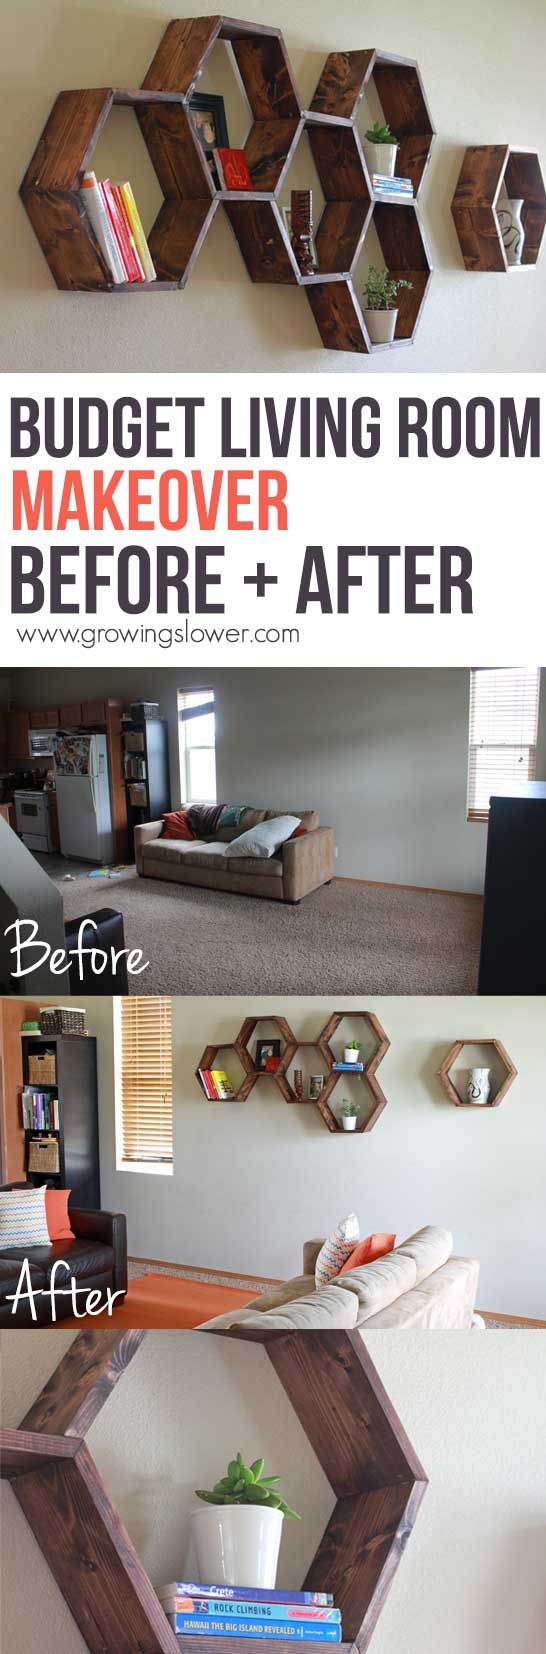 Budget Living Room Makeover Before And After How To